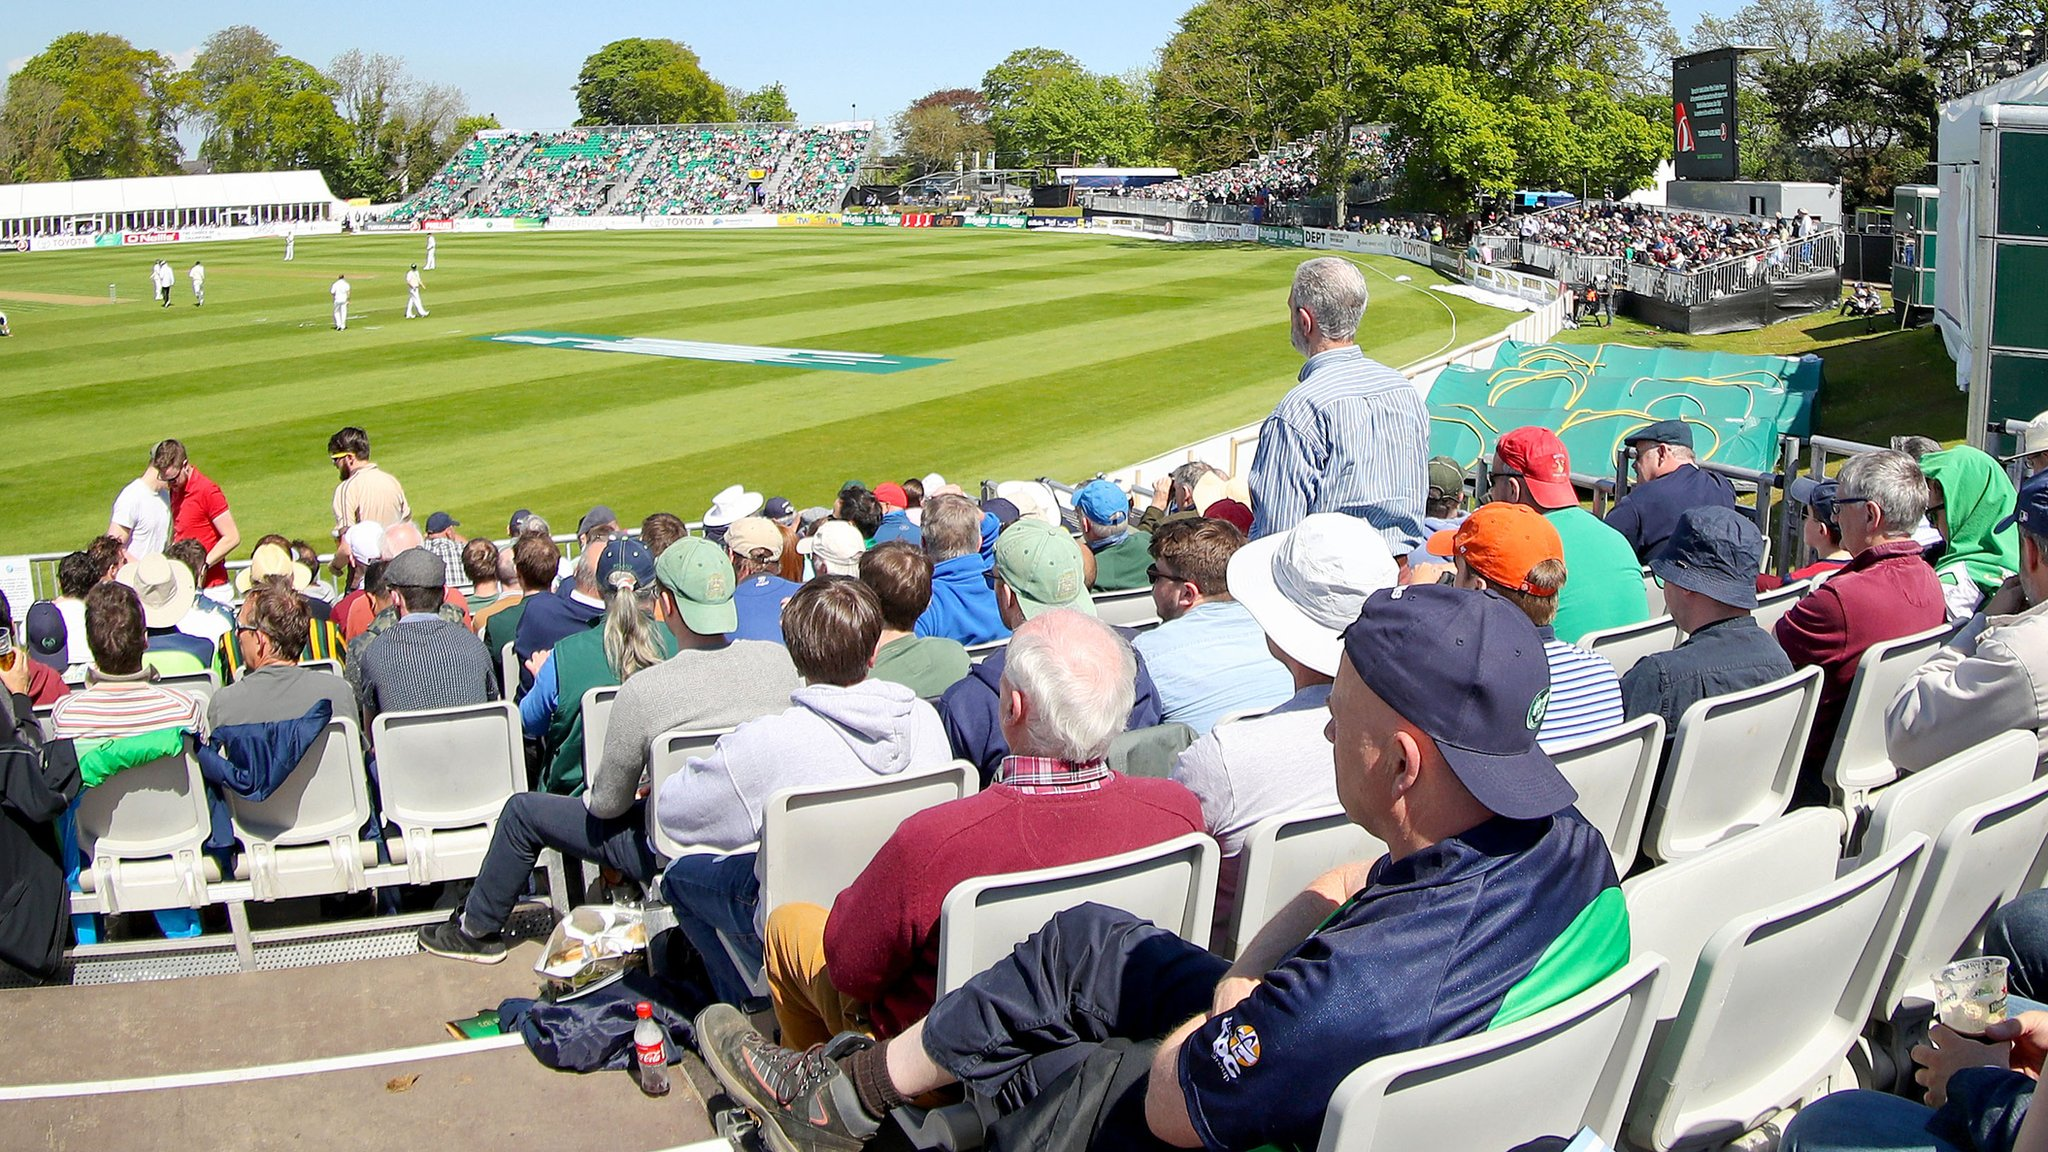 Malahide will host Ireland v England ODI in May 2019